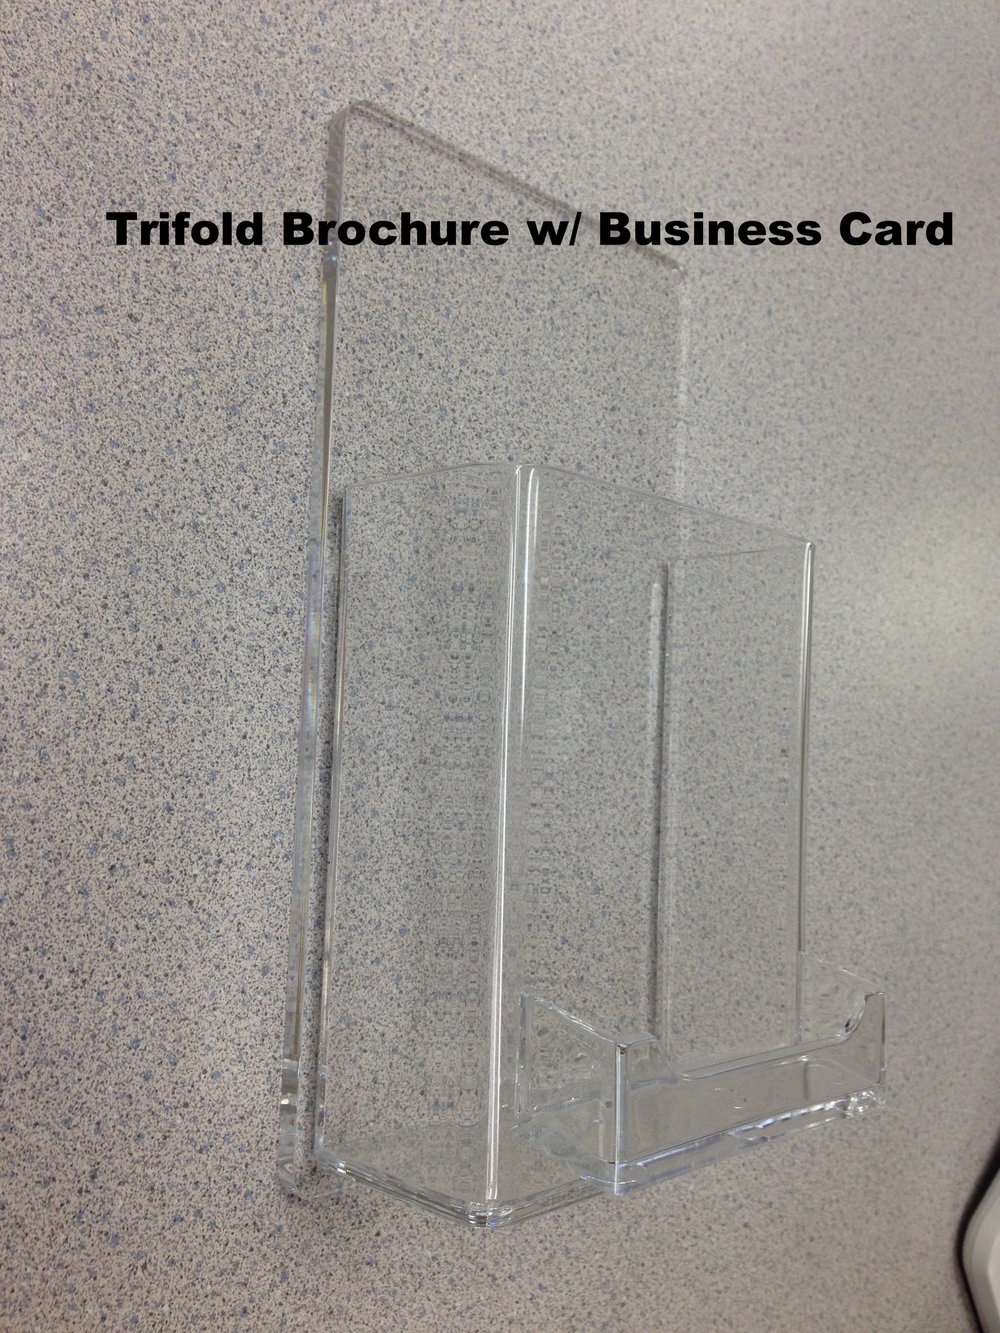 Trifold Brochure w/ Business Card